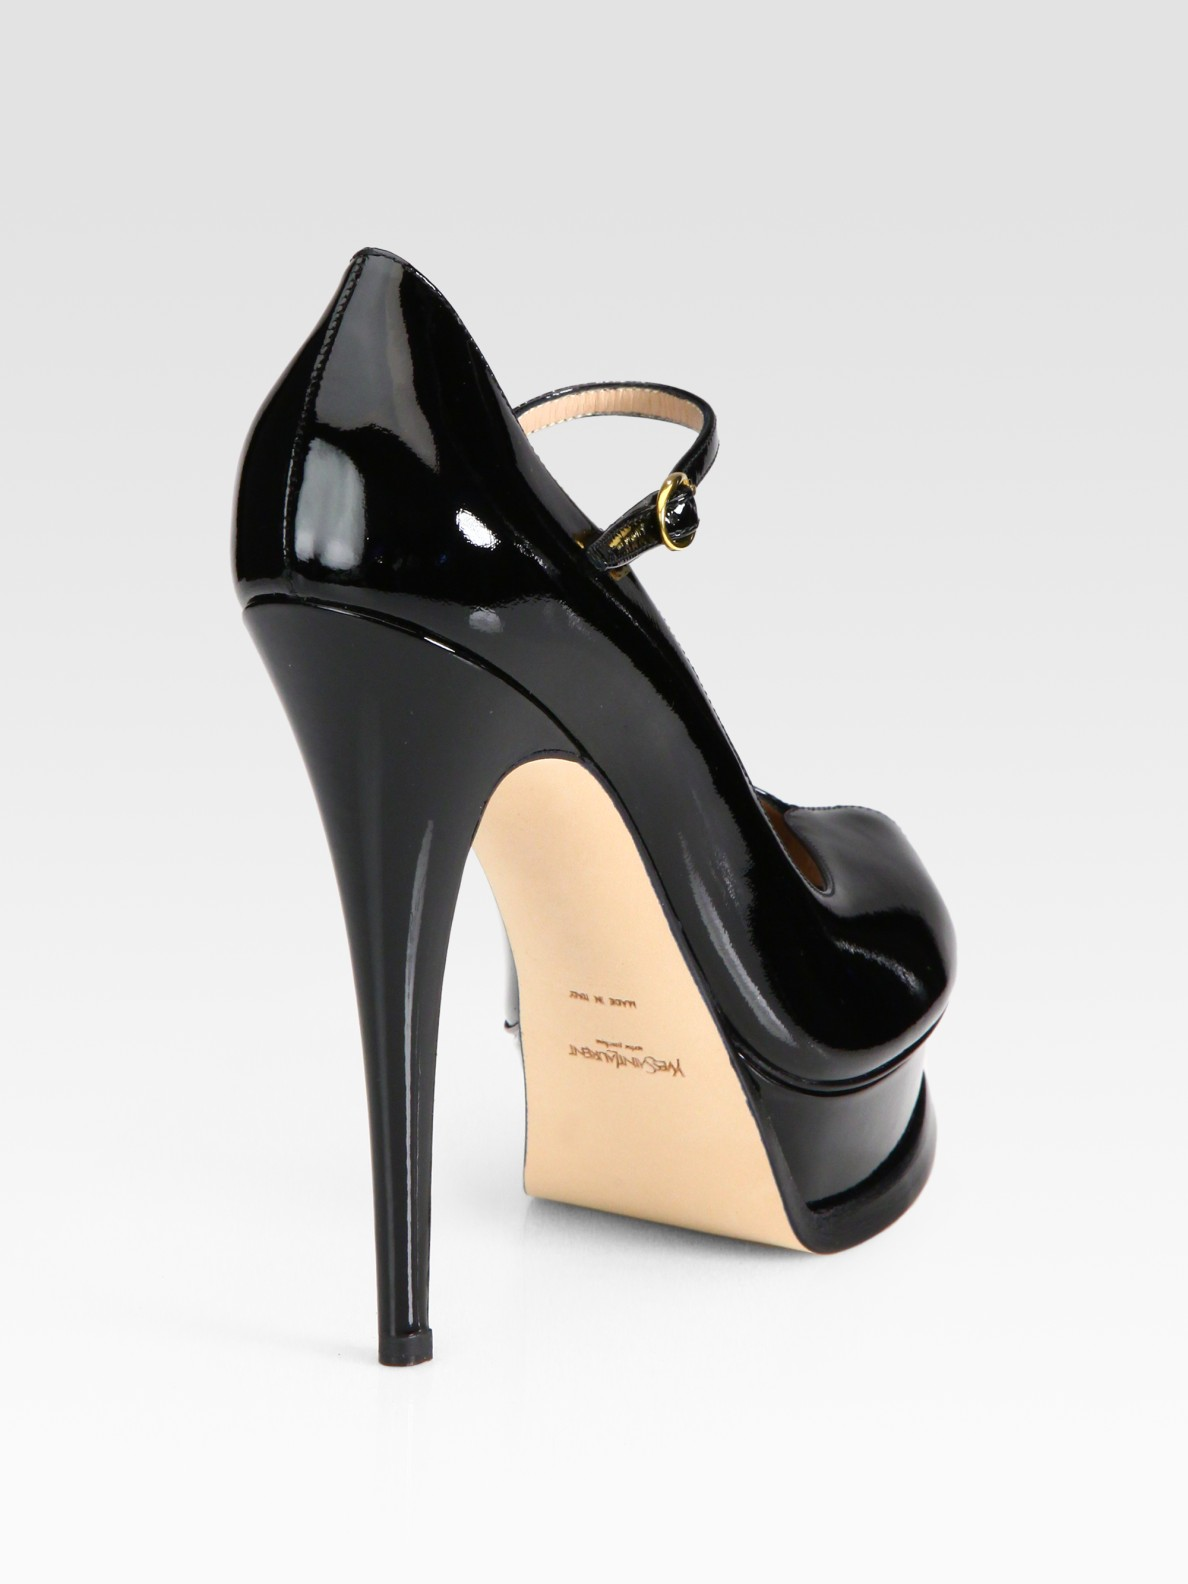 price of christian louboutin shoes - christian louboutin leather and patent leather mary jane platform ...